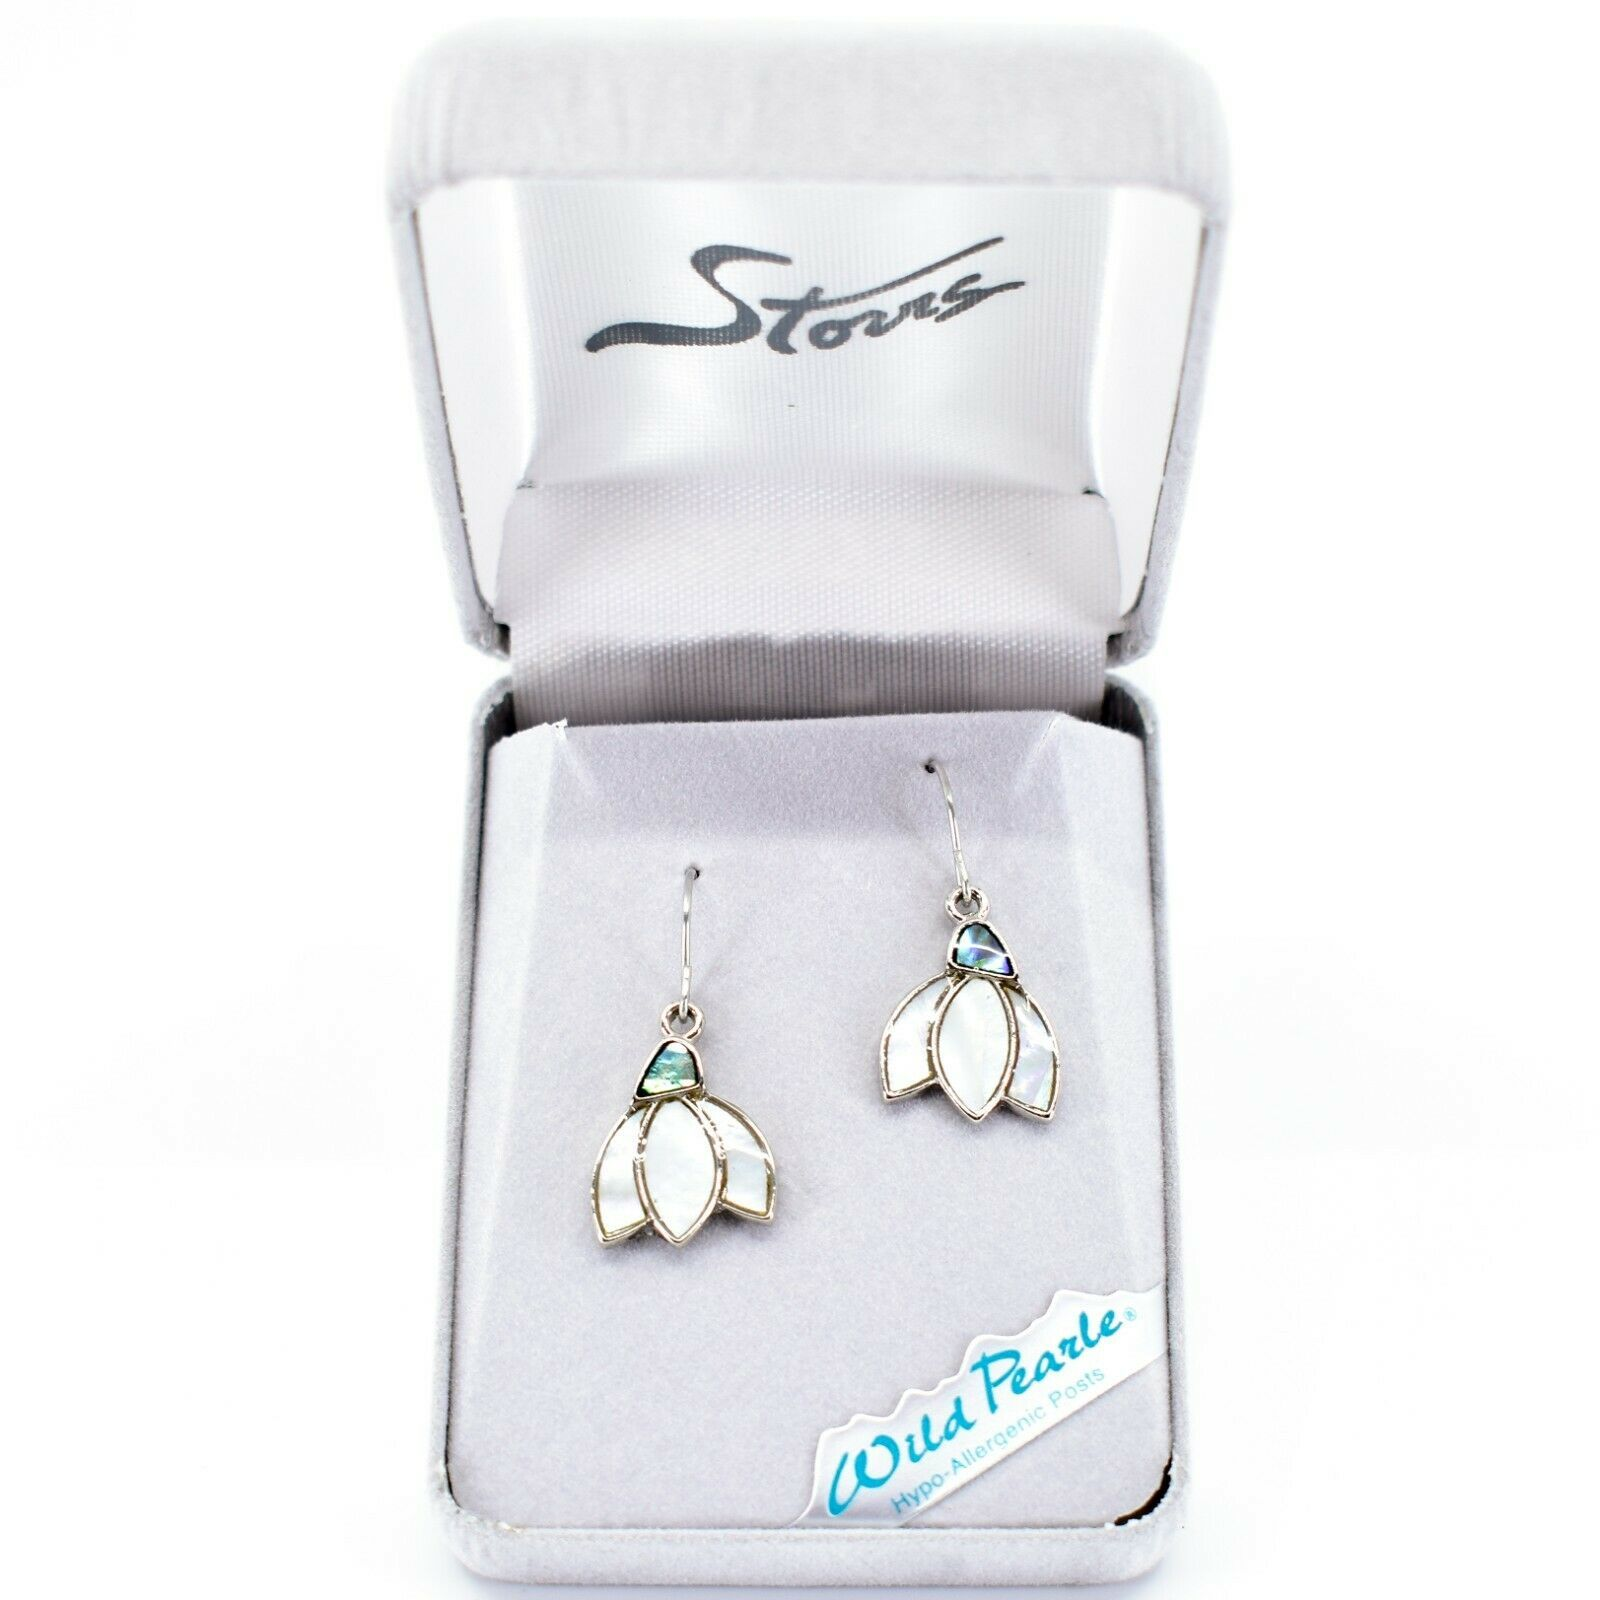 A.T. Storrs Wild Pearle Abalone Snowdrop Flower Hook Earrings